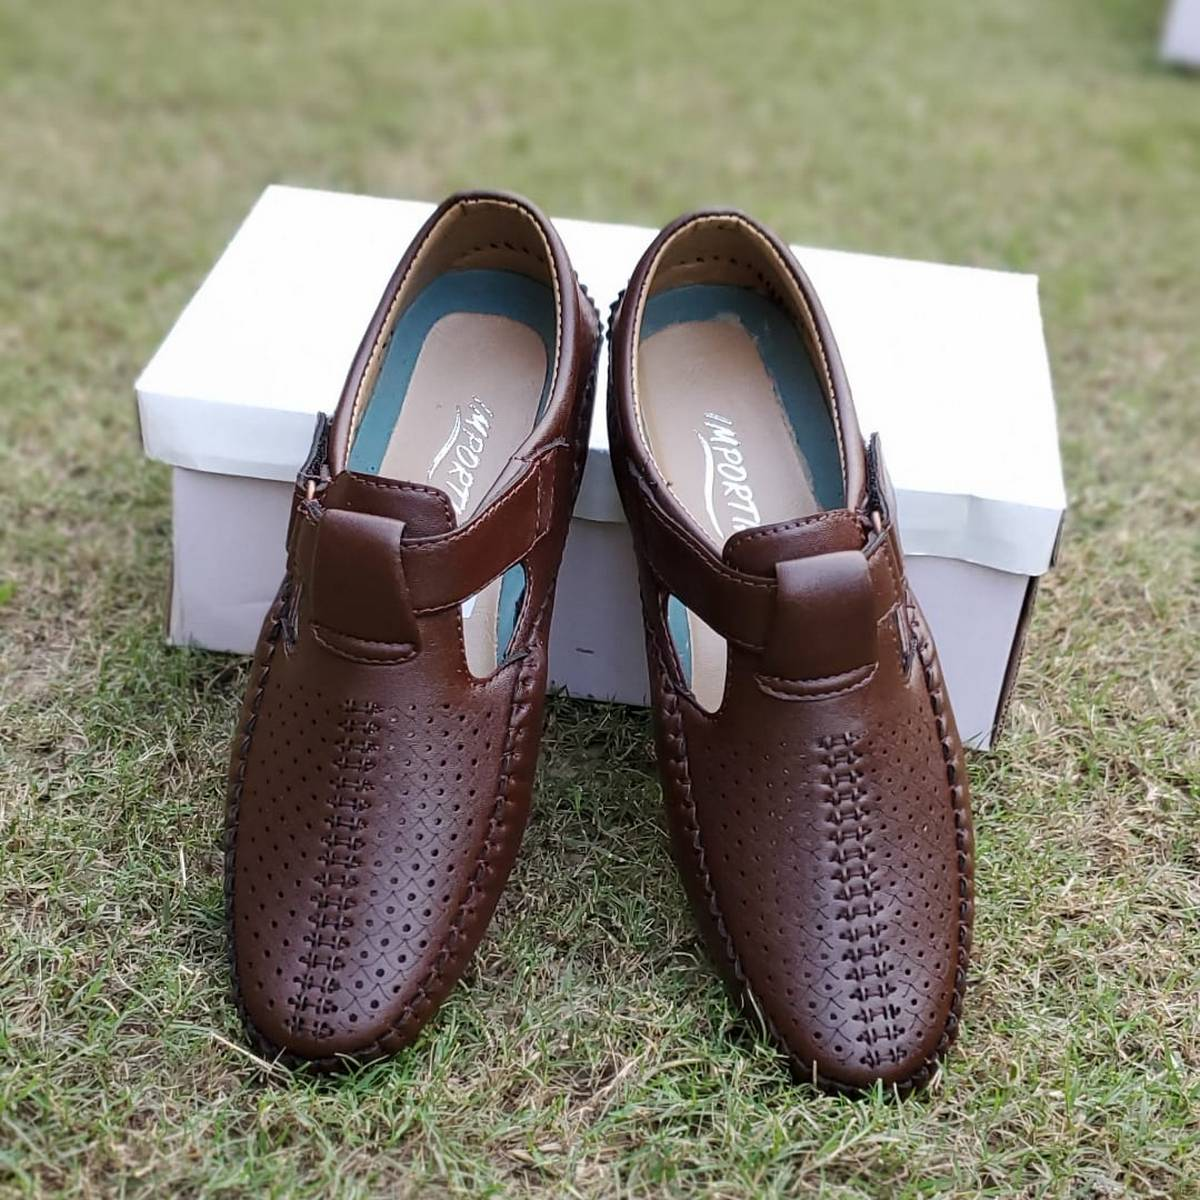 Brown Synthetic Leather Driving Sandals For Men By Importia